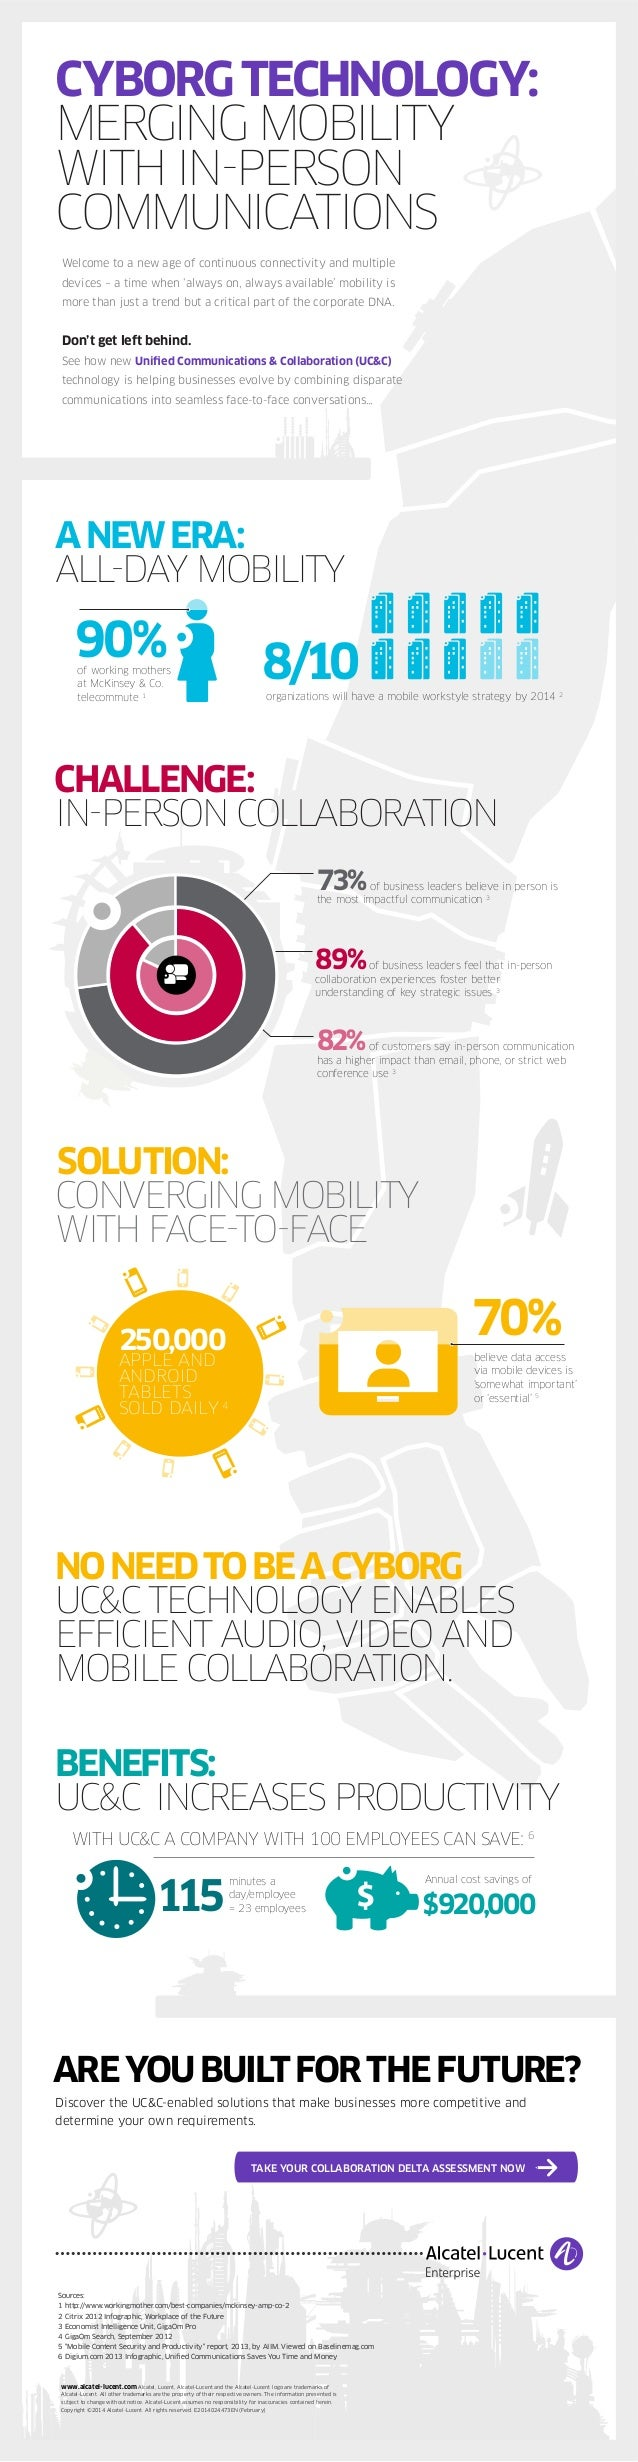 organizations will have a mobile workstyle strategy by 2014 2 8/10 Sources: 1 http://www.workingmother.com/best-companies/...